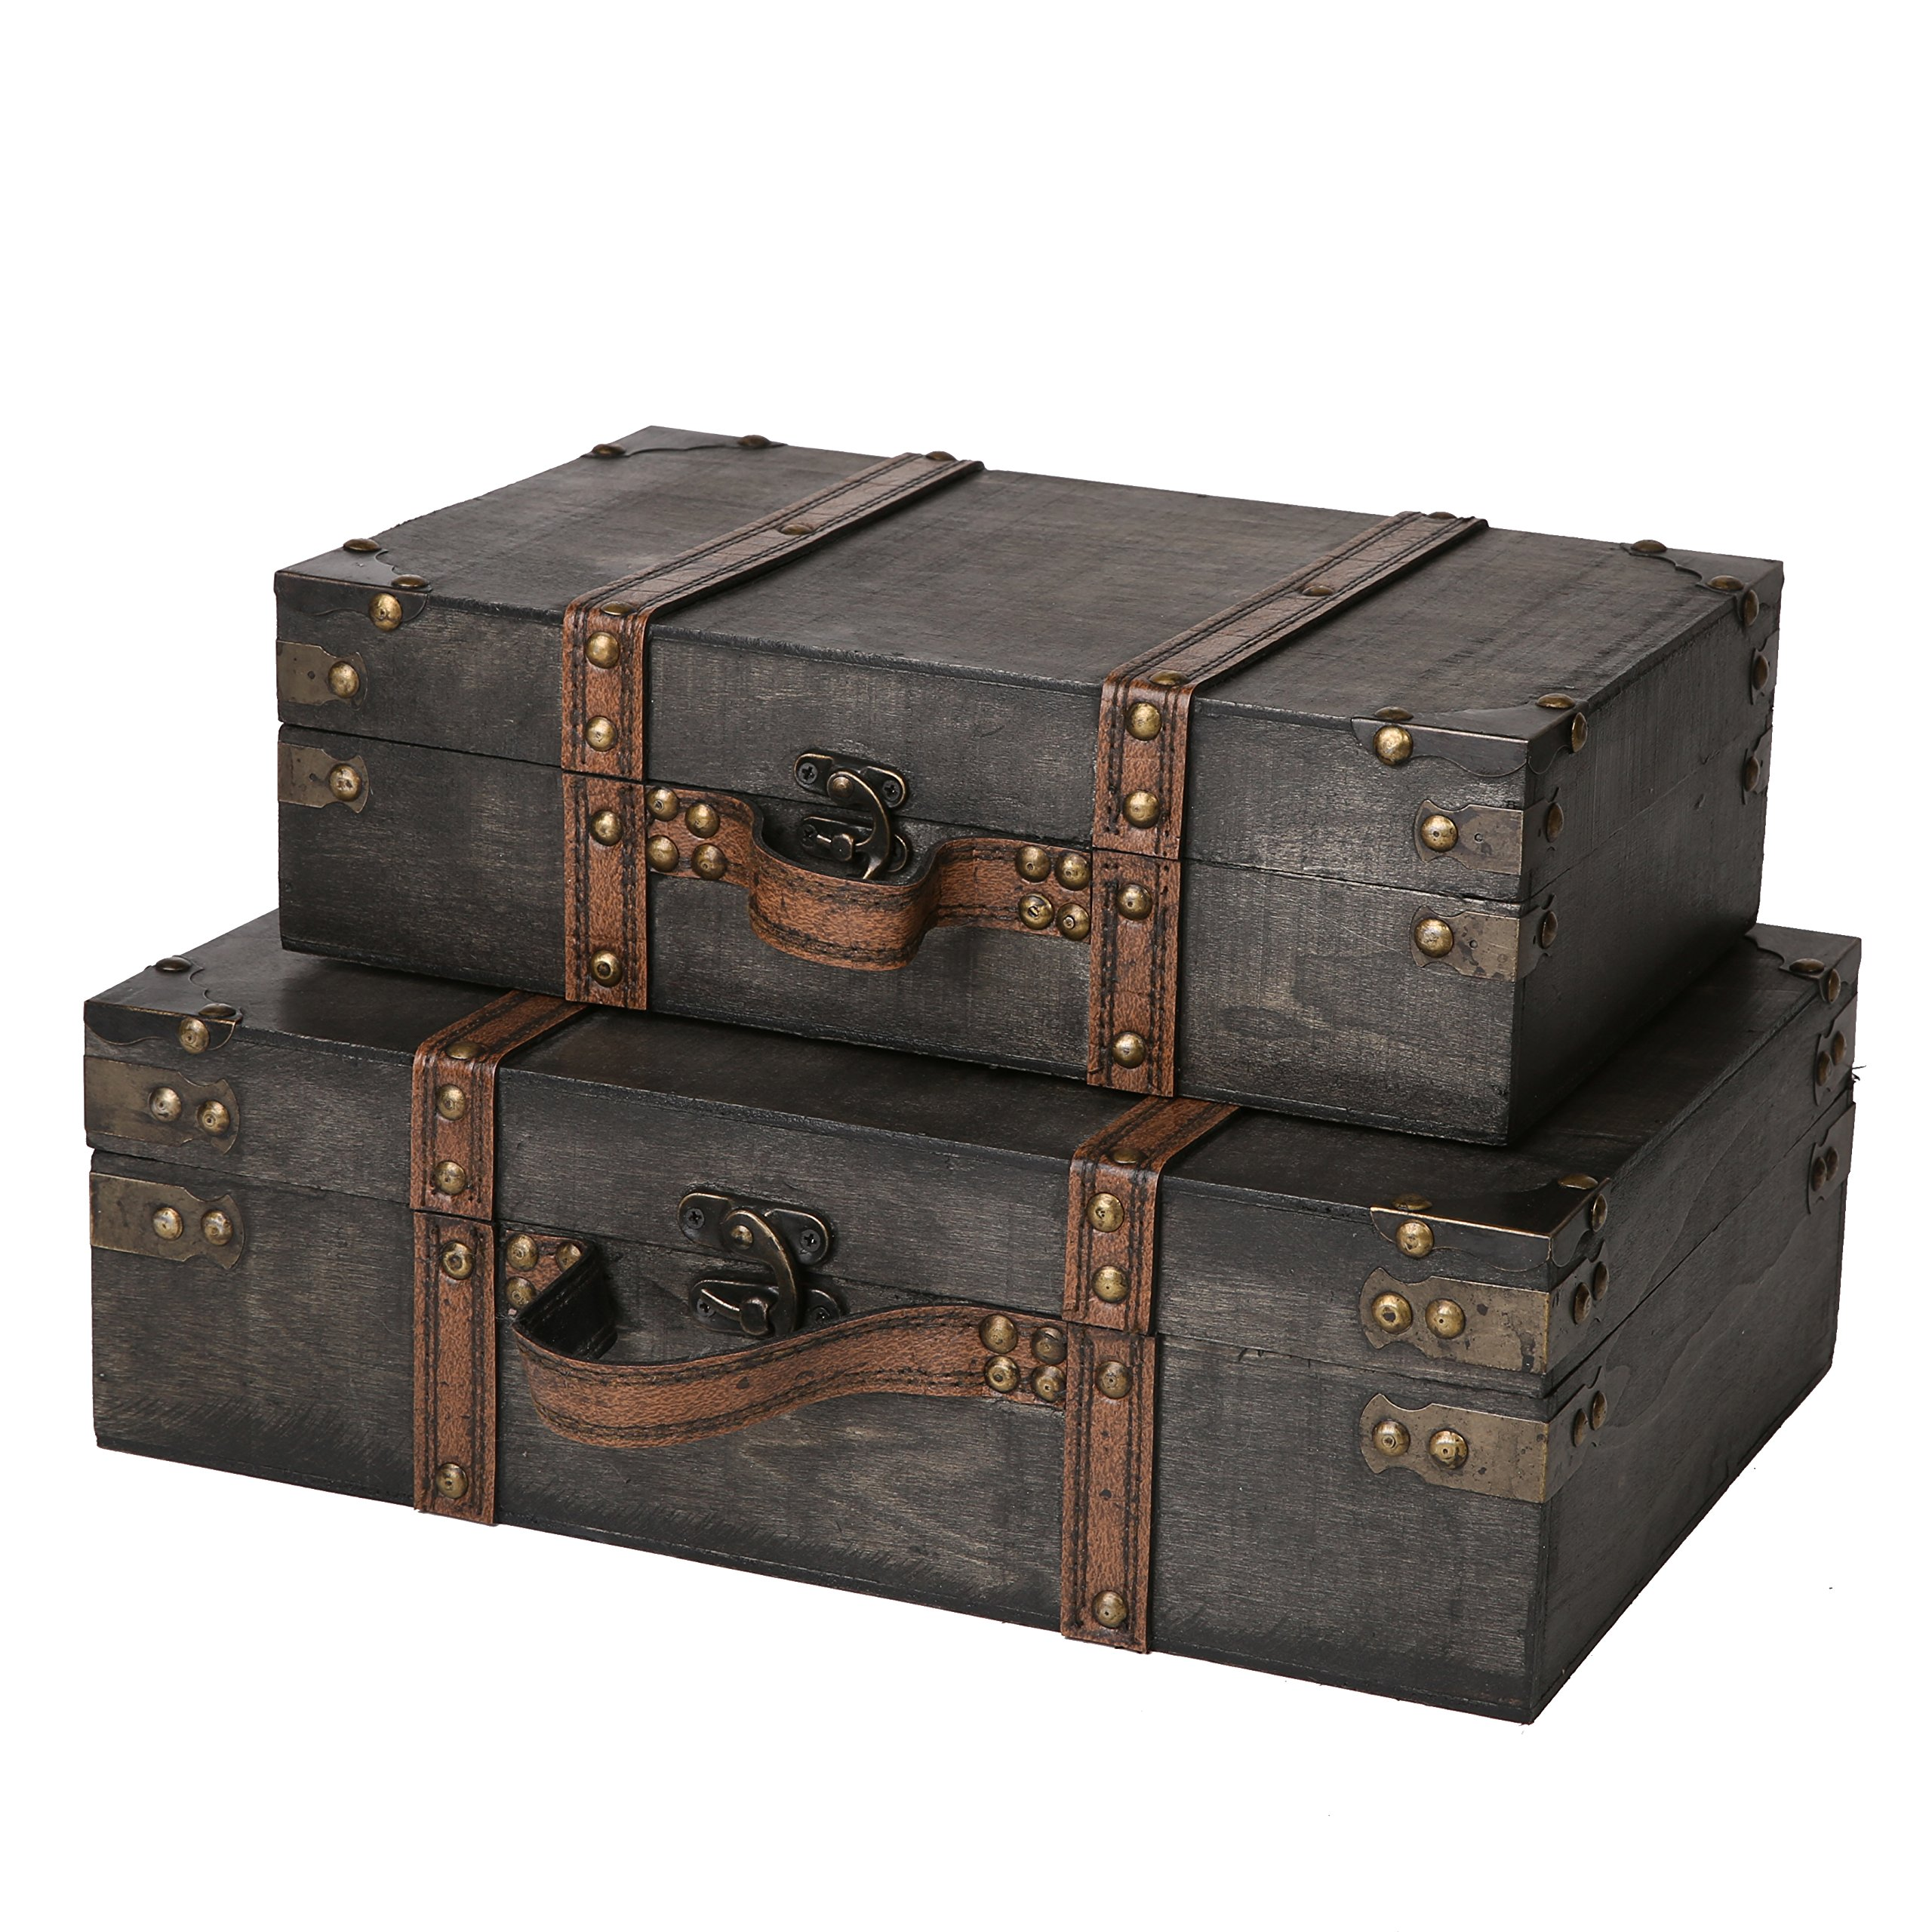 SLPR Worthington Wooden Suitcase with Straps (Set of 2, Dark Brown) | Old-Fashioned Antique Vintage Style Nesting Trunks for Shelf Home Decor Birthday Parties Wedding Decoration Displays Crafts